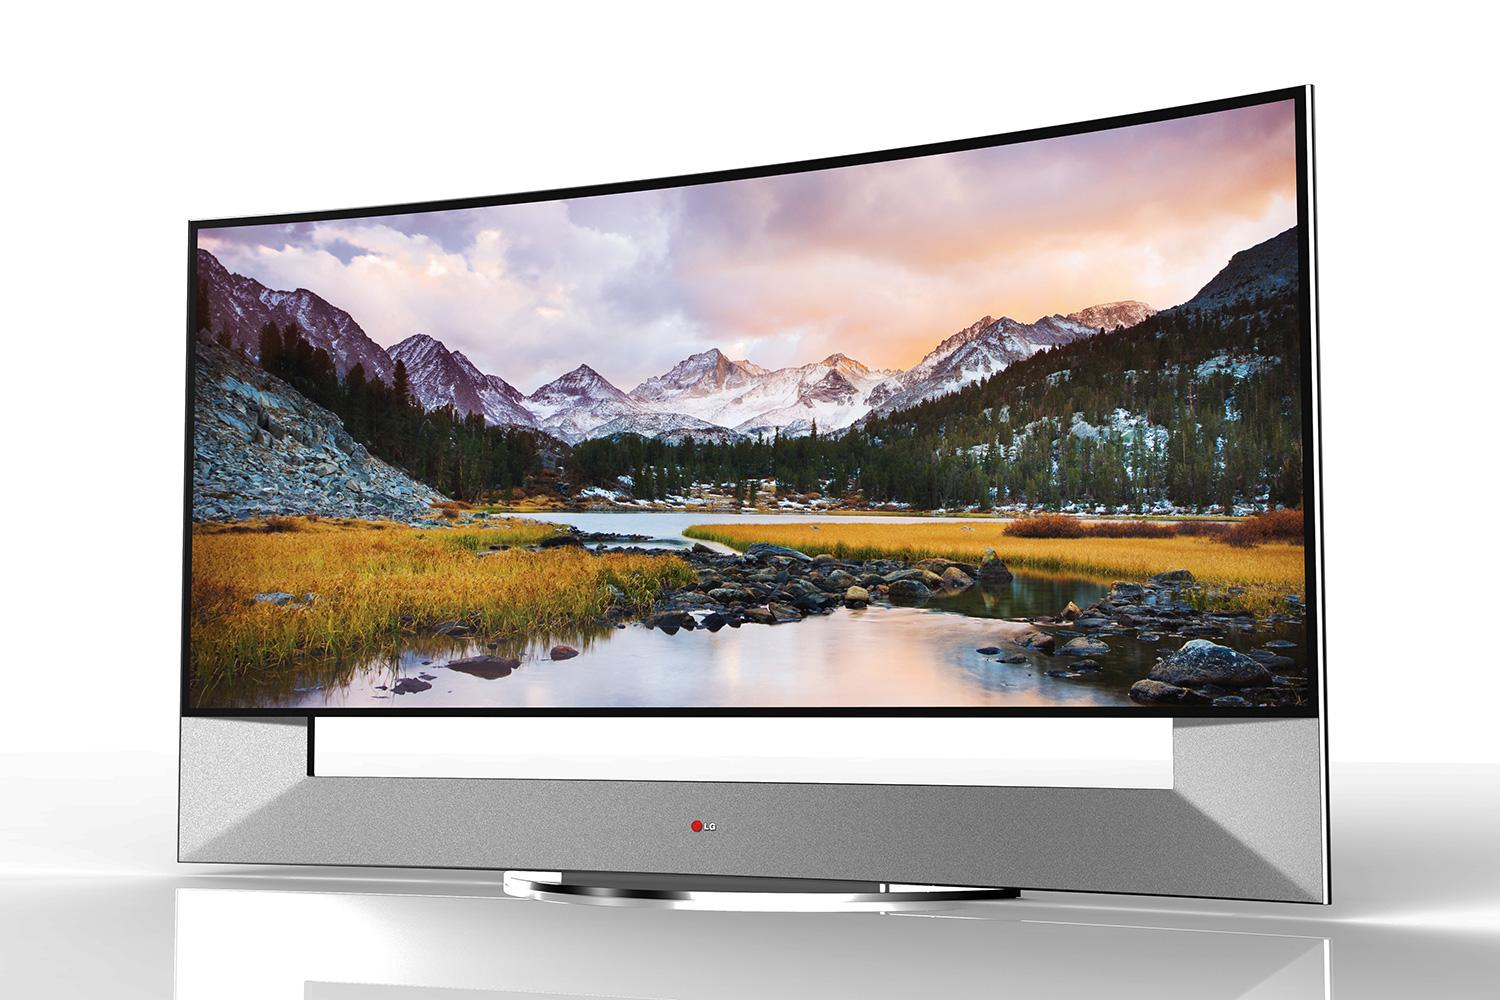 Tv 4k Lg Announces 105 Inch Curved 4k Ultra Hd Tv Ahead Of Ces